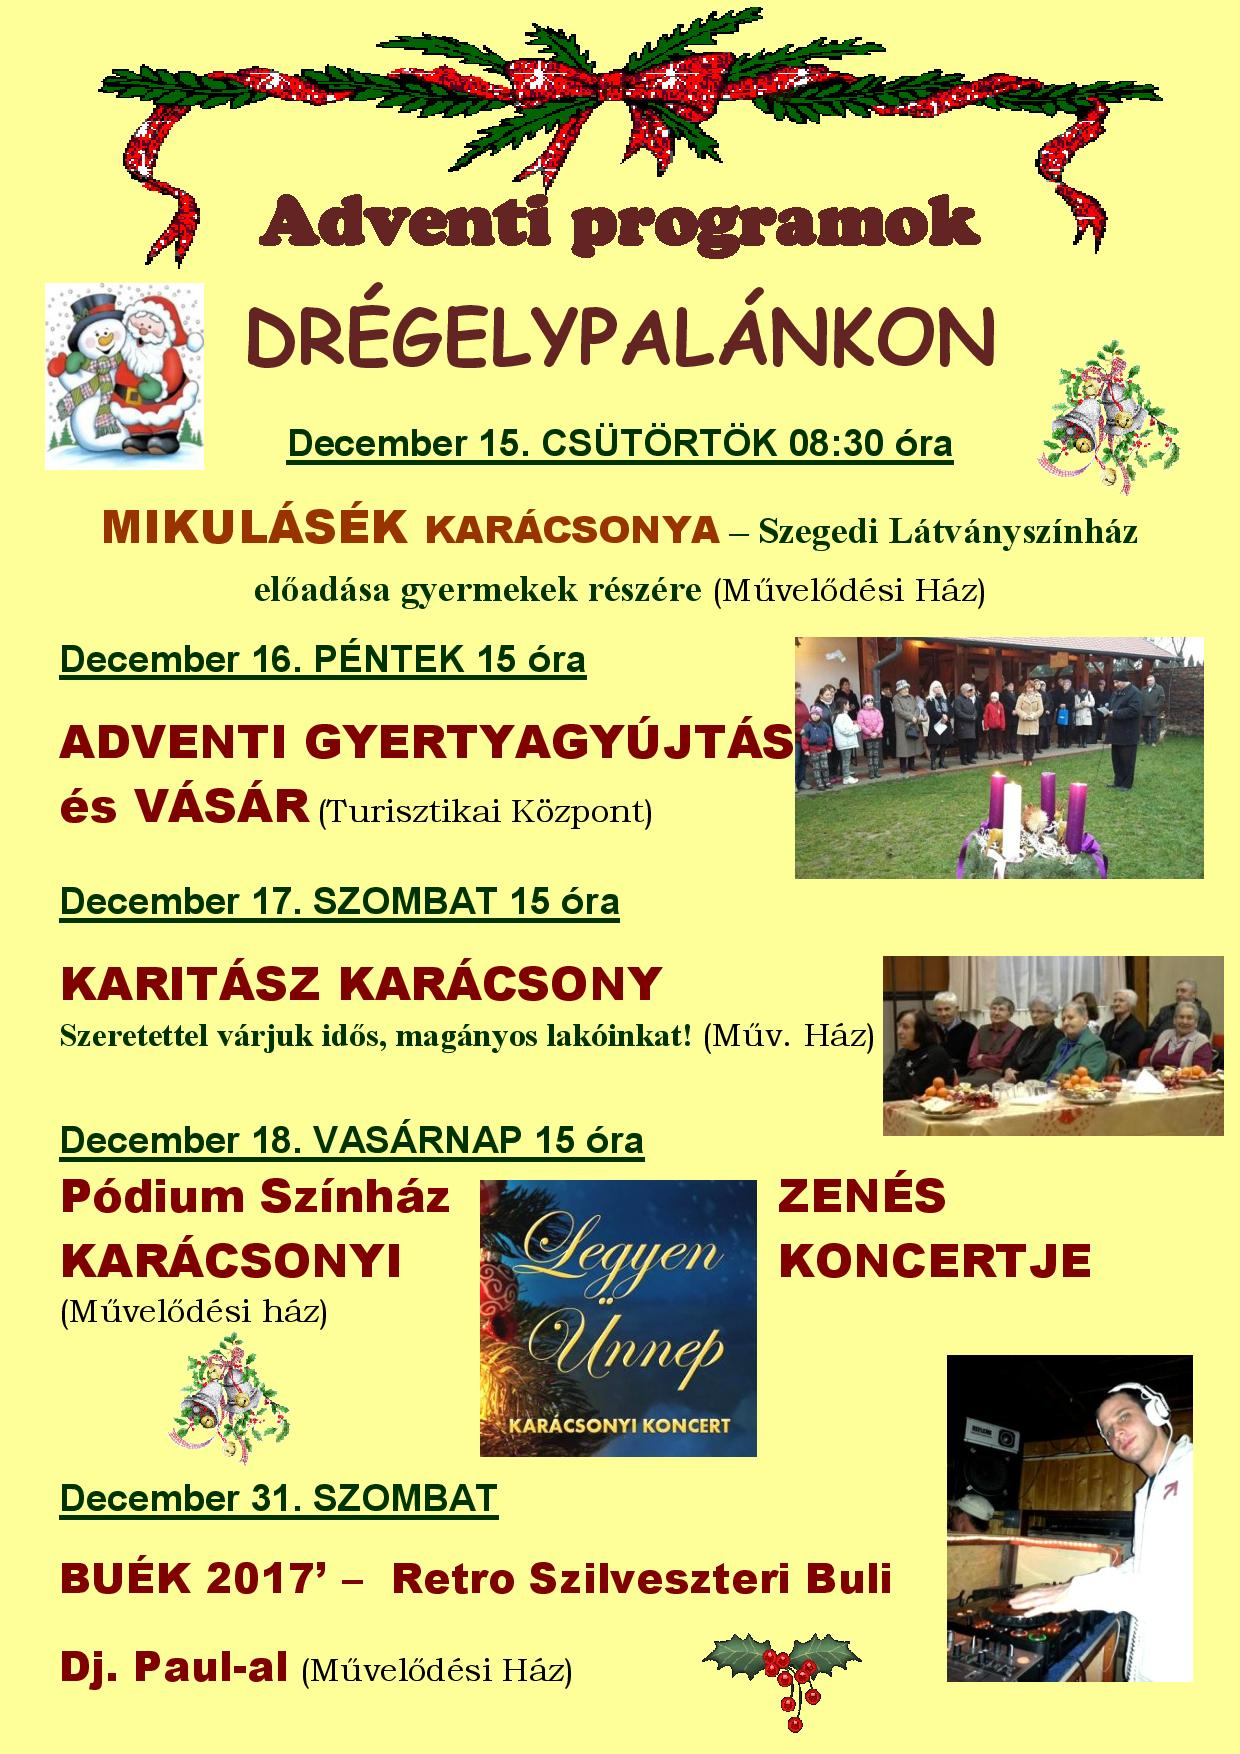 adventi-programok-vegleges